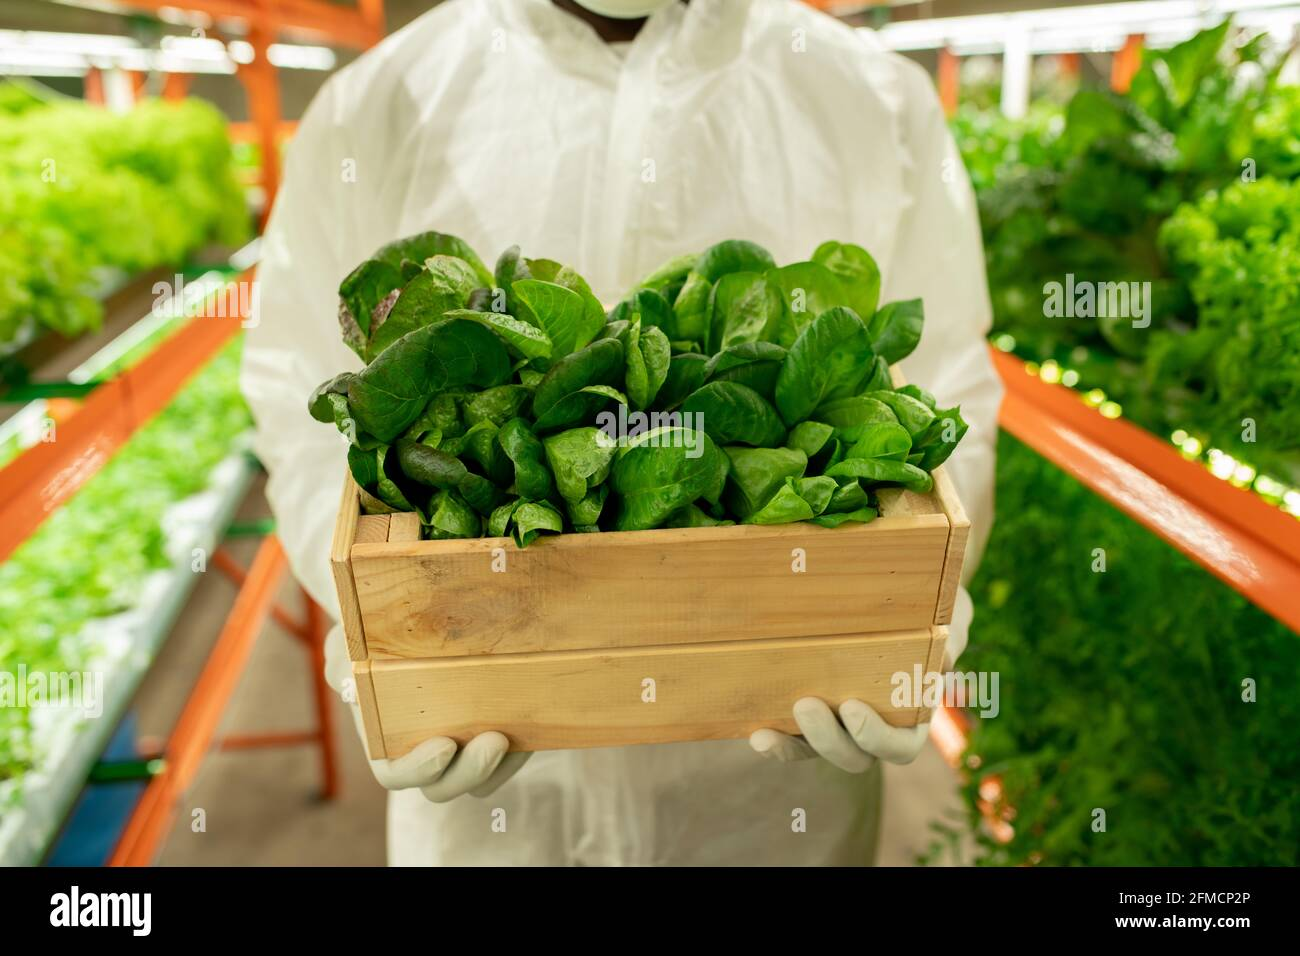 Close-up of unrecognizable agroengineer in protective workwear standing with box of green seedlings at vertical farm Stock Photo